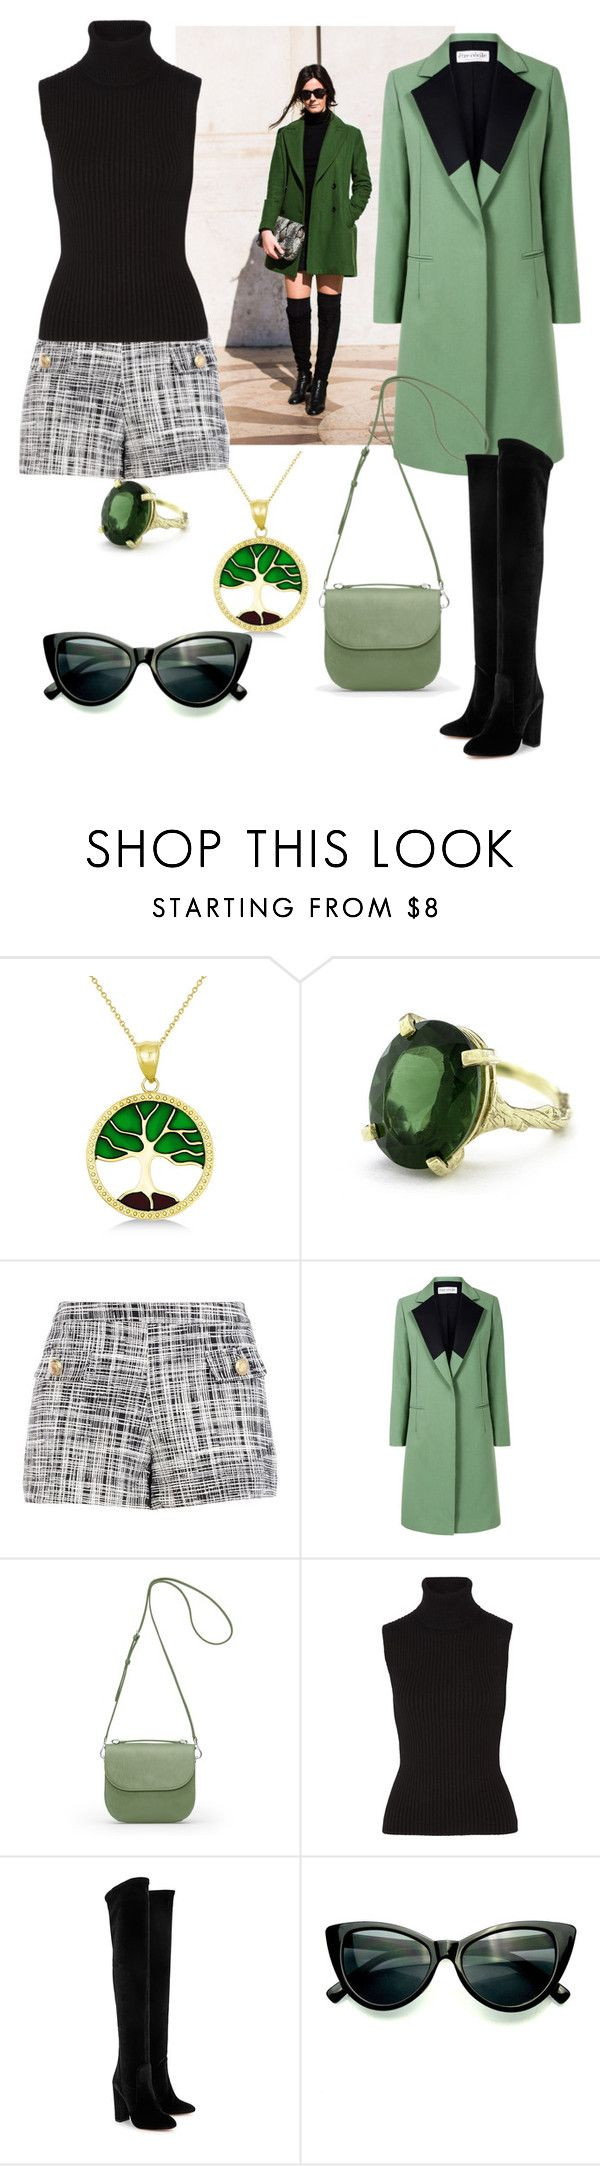 """""""Today is my favorite day"""" by riccio-25 ❤ liked on Polyvore featuring Allurez, Chupi, Boutique Moschino, Être Cécile, GRETCHEN, Michael Kors and Aquazzura"""